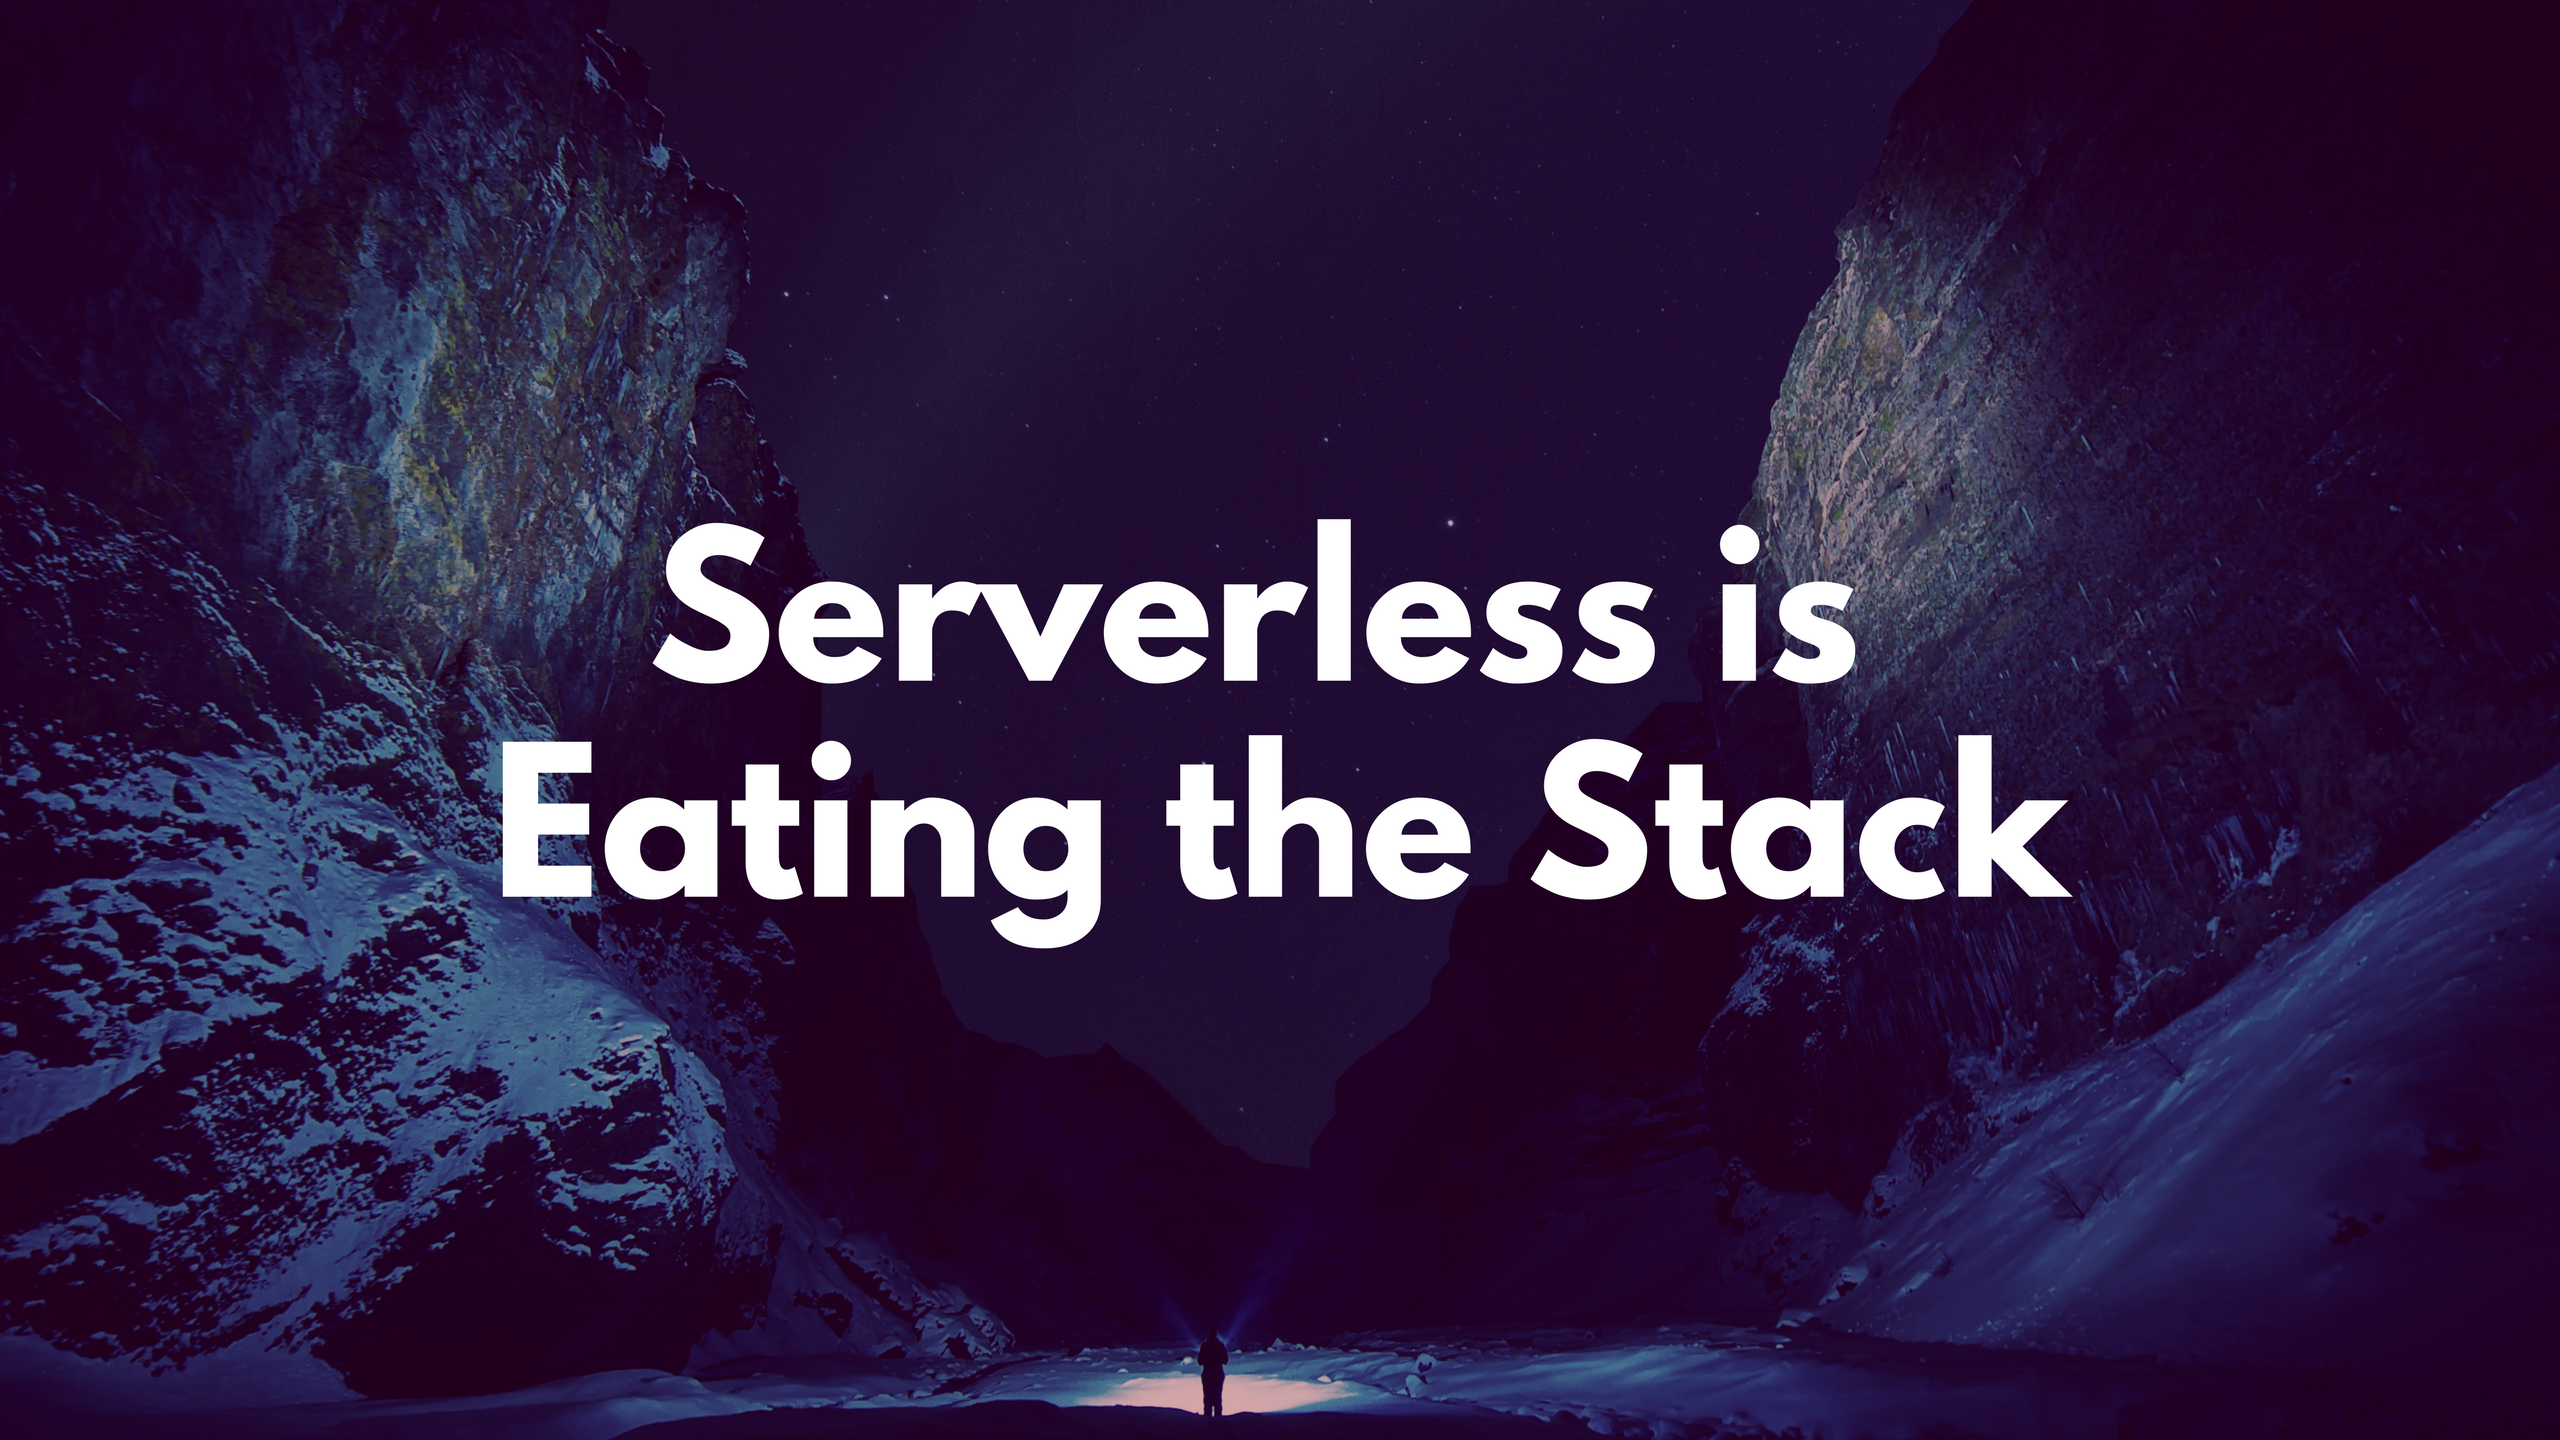 Serverless is eating the stack and people are freaking out